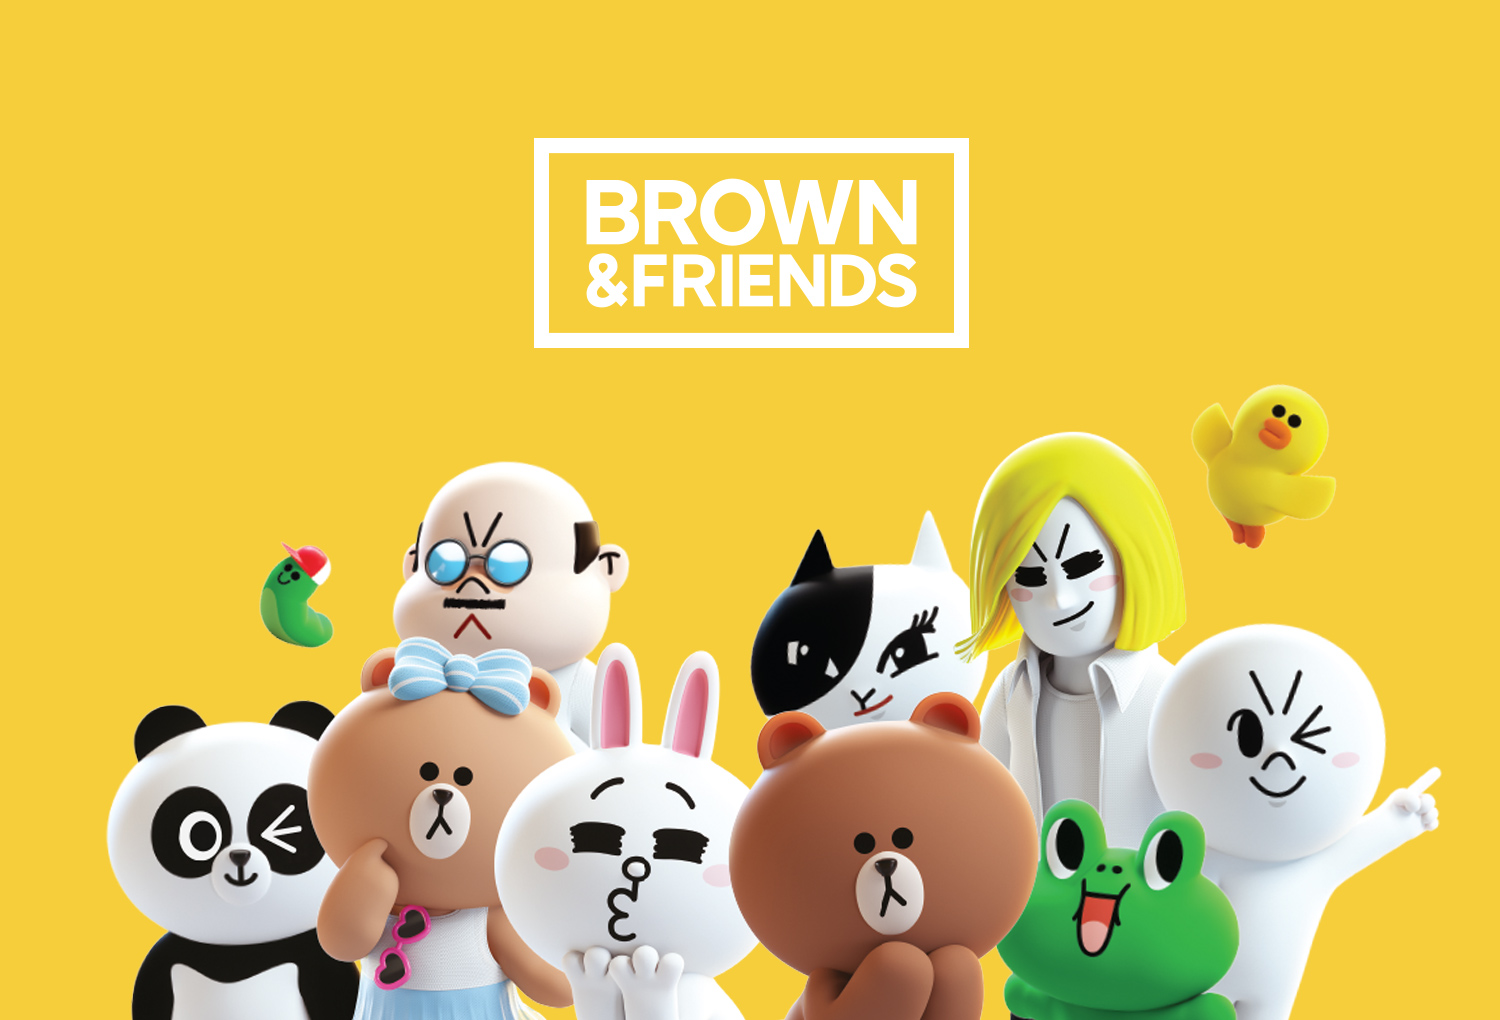 BROWN & FRIENDS